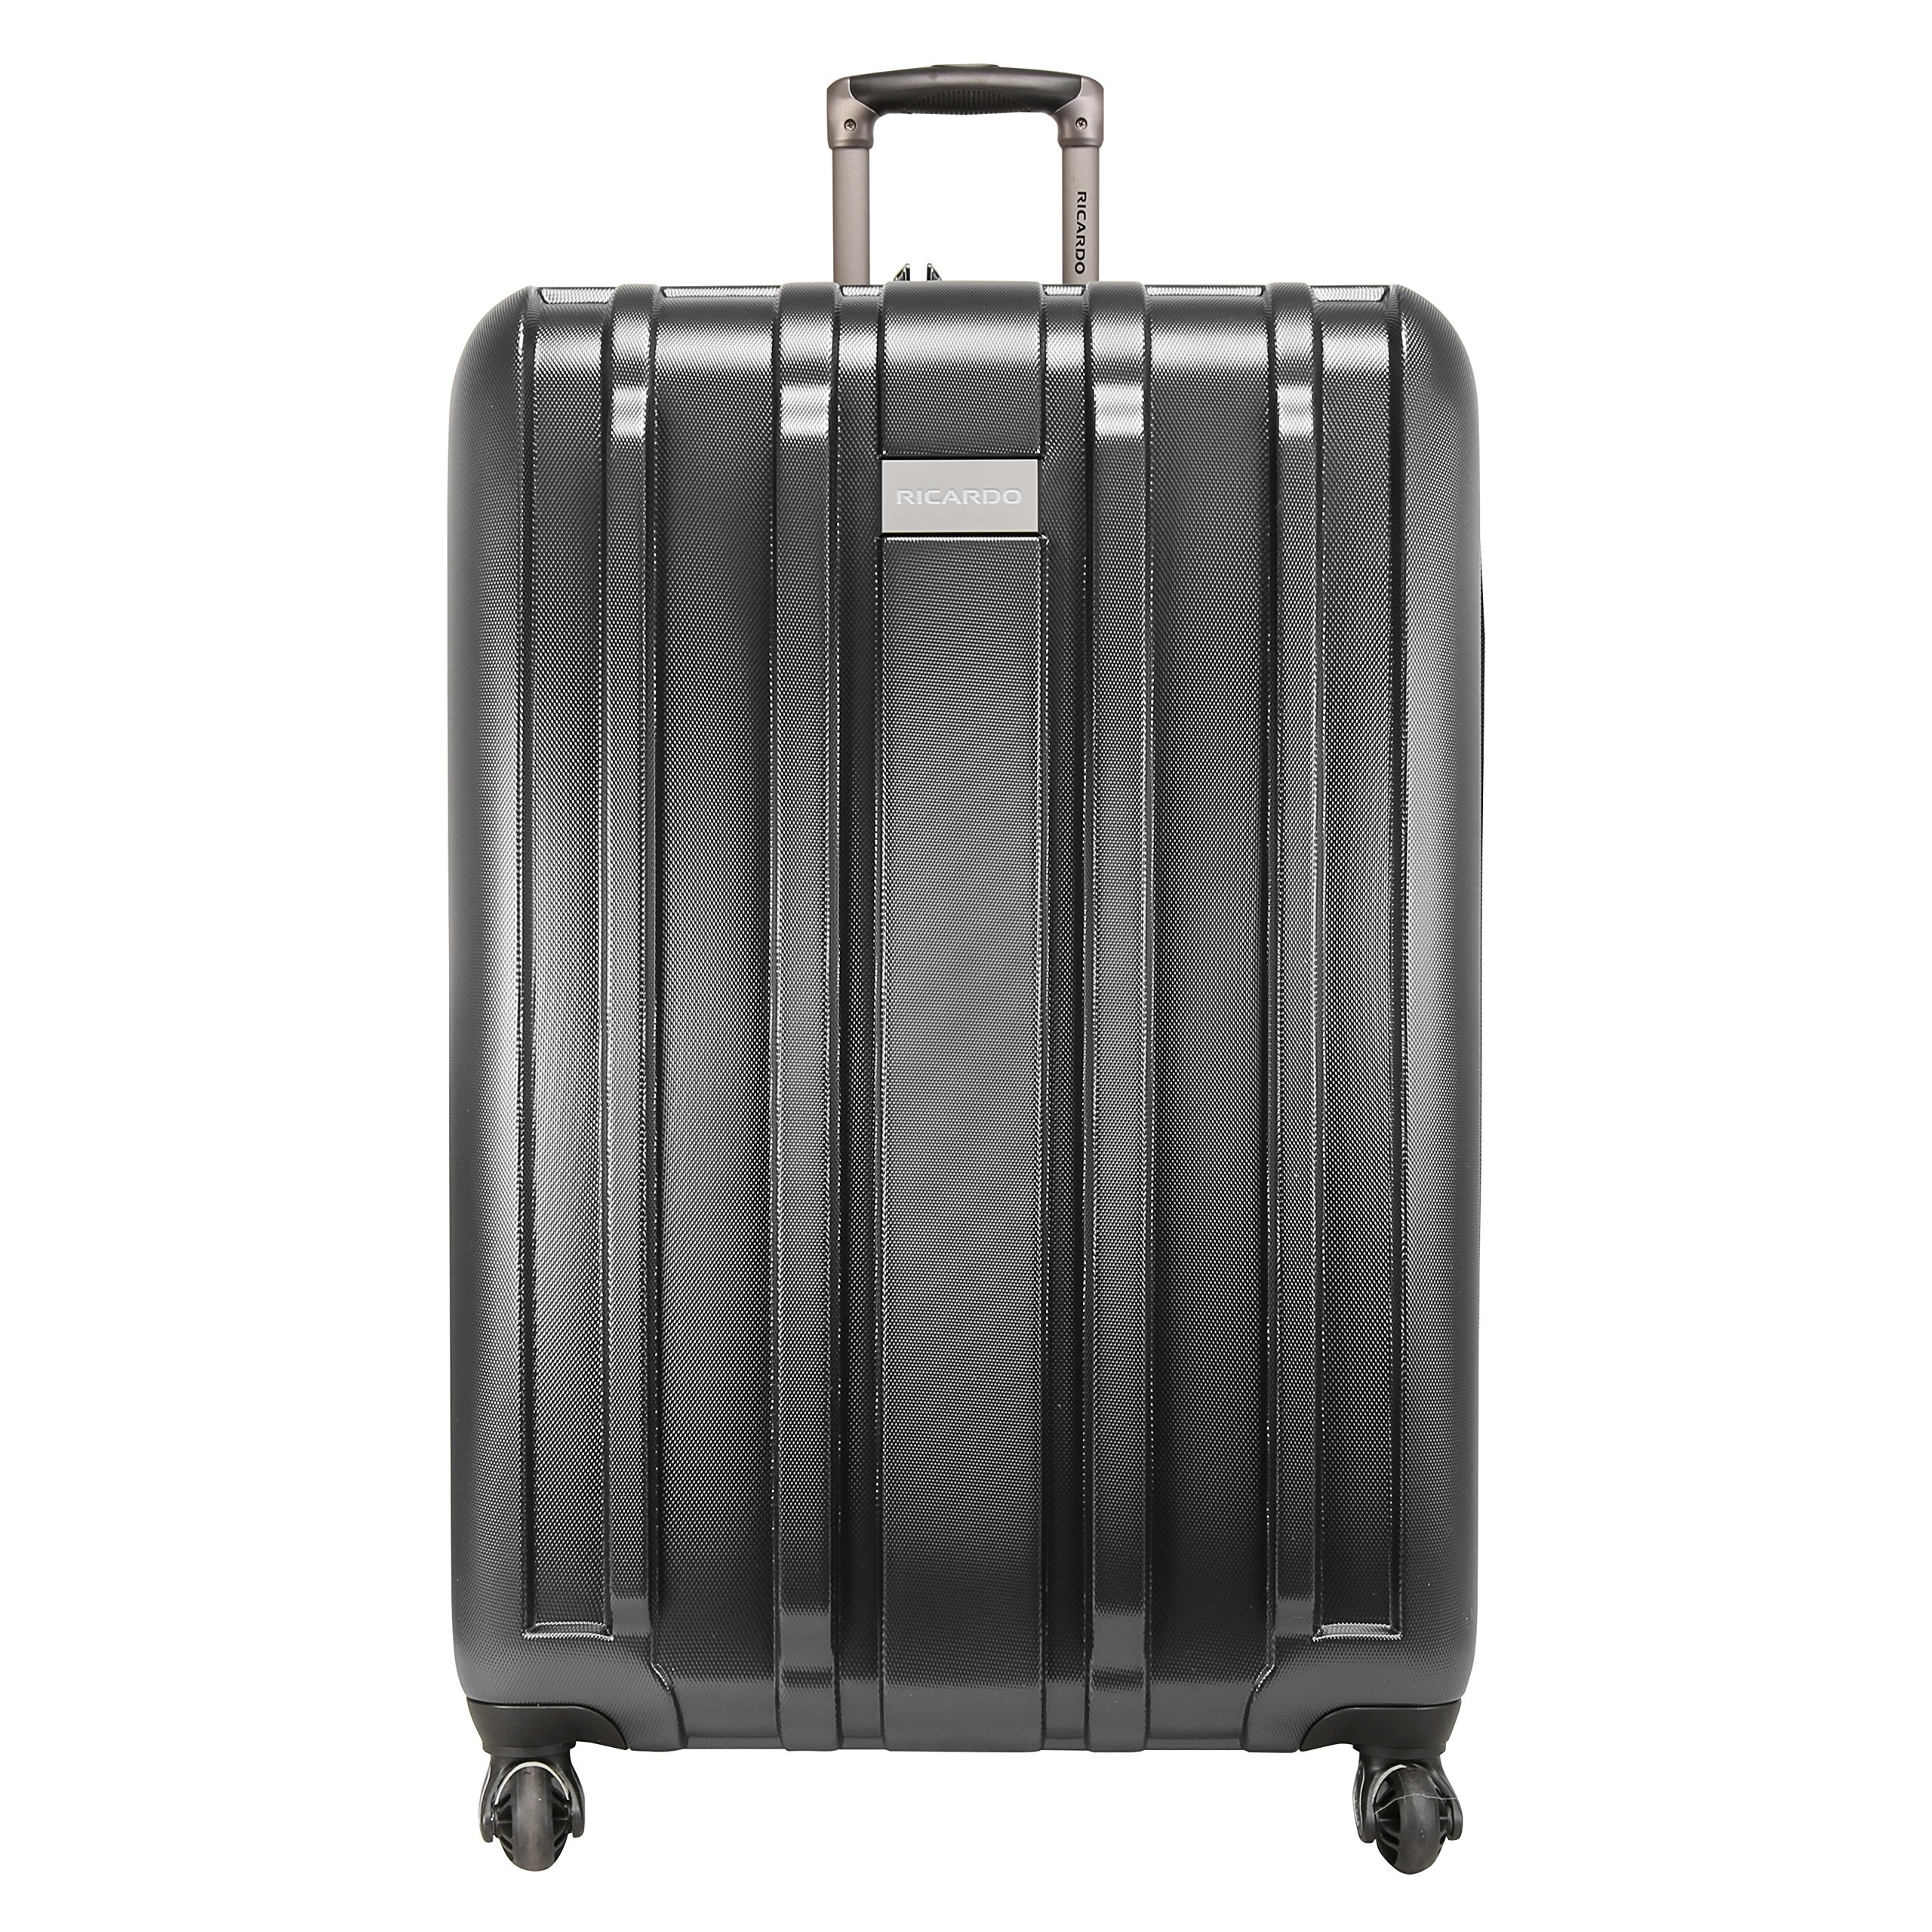 Ricardo Beverly Hills Yosemite 29-inch Spinner Upright Suitcase, Gray